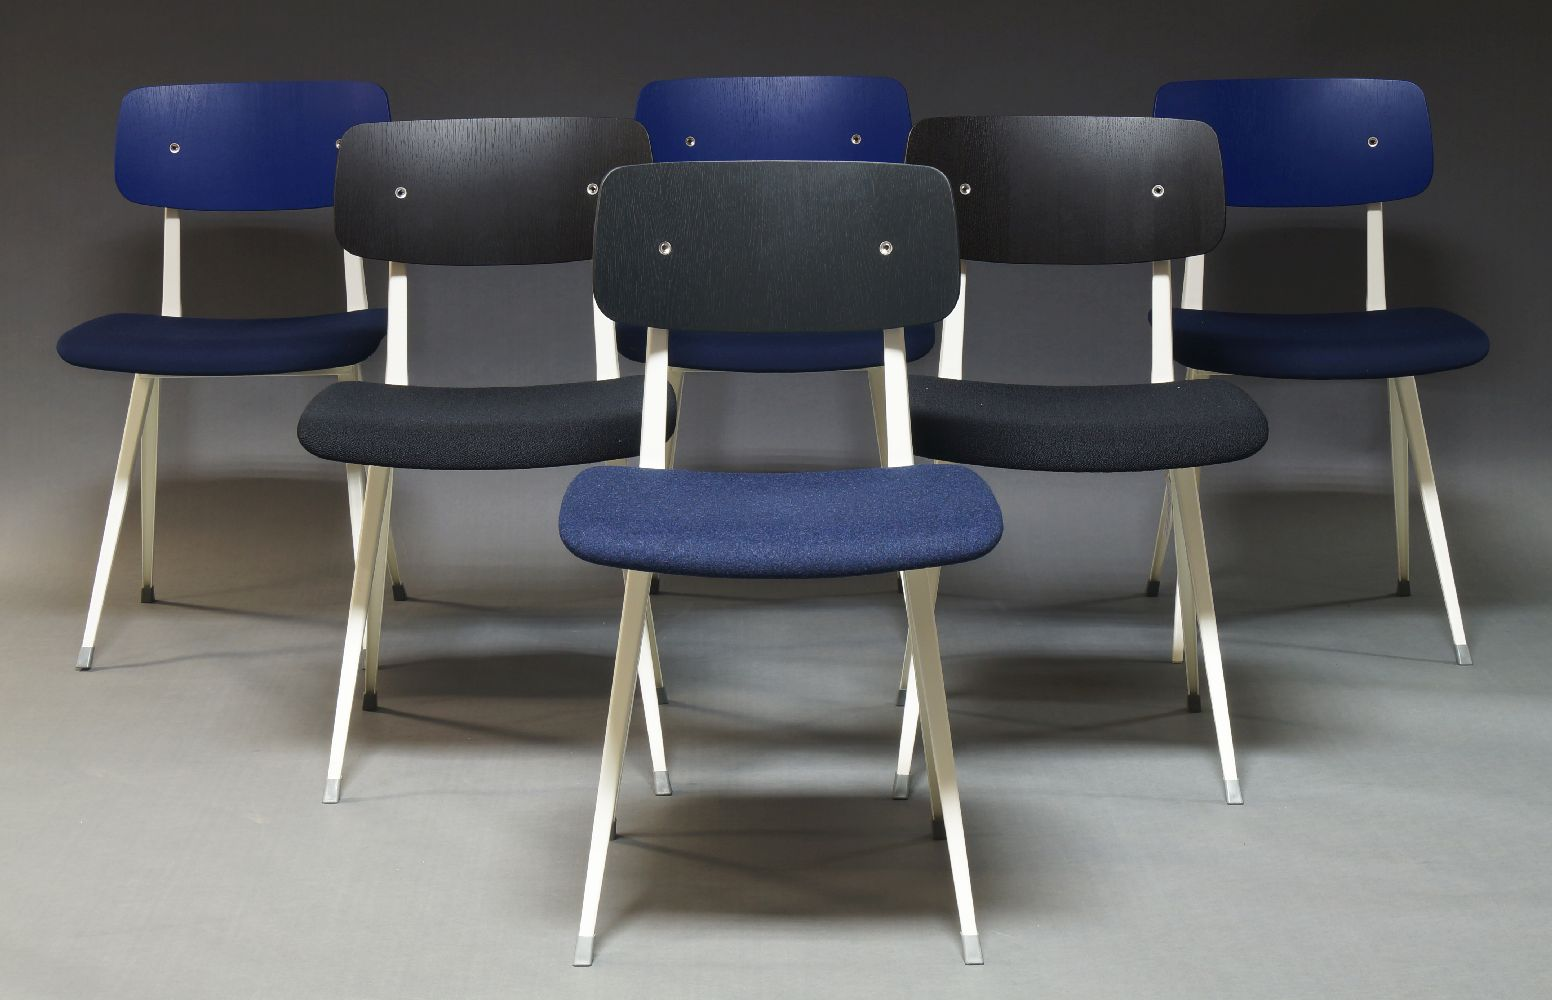 Friso Kramer & Wim Reitveld, six 'Result' chairs for Hay and Ahrend, of recent manufacture, three